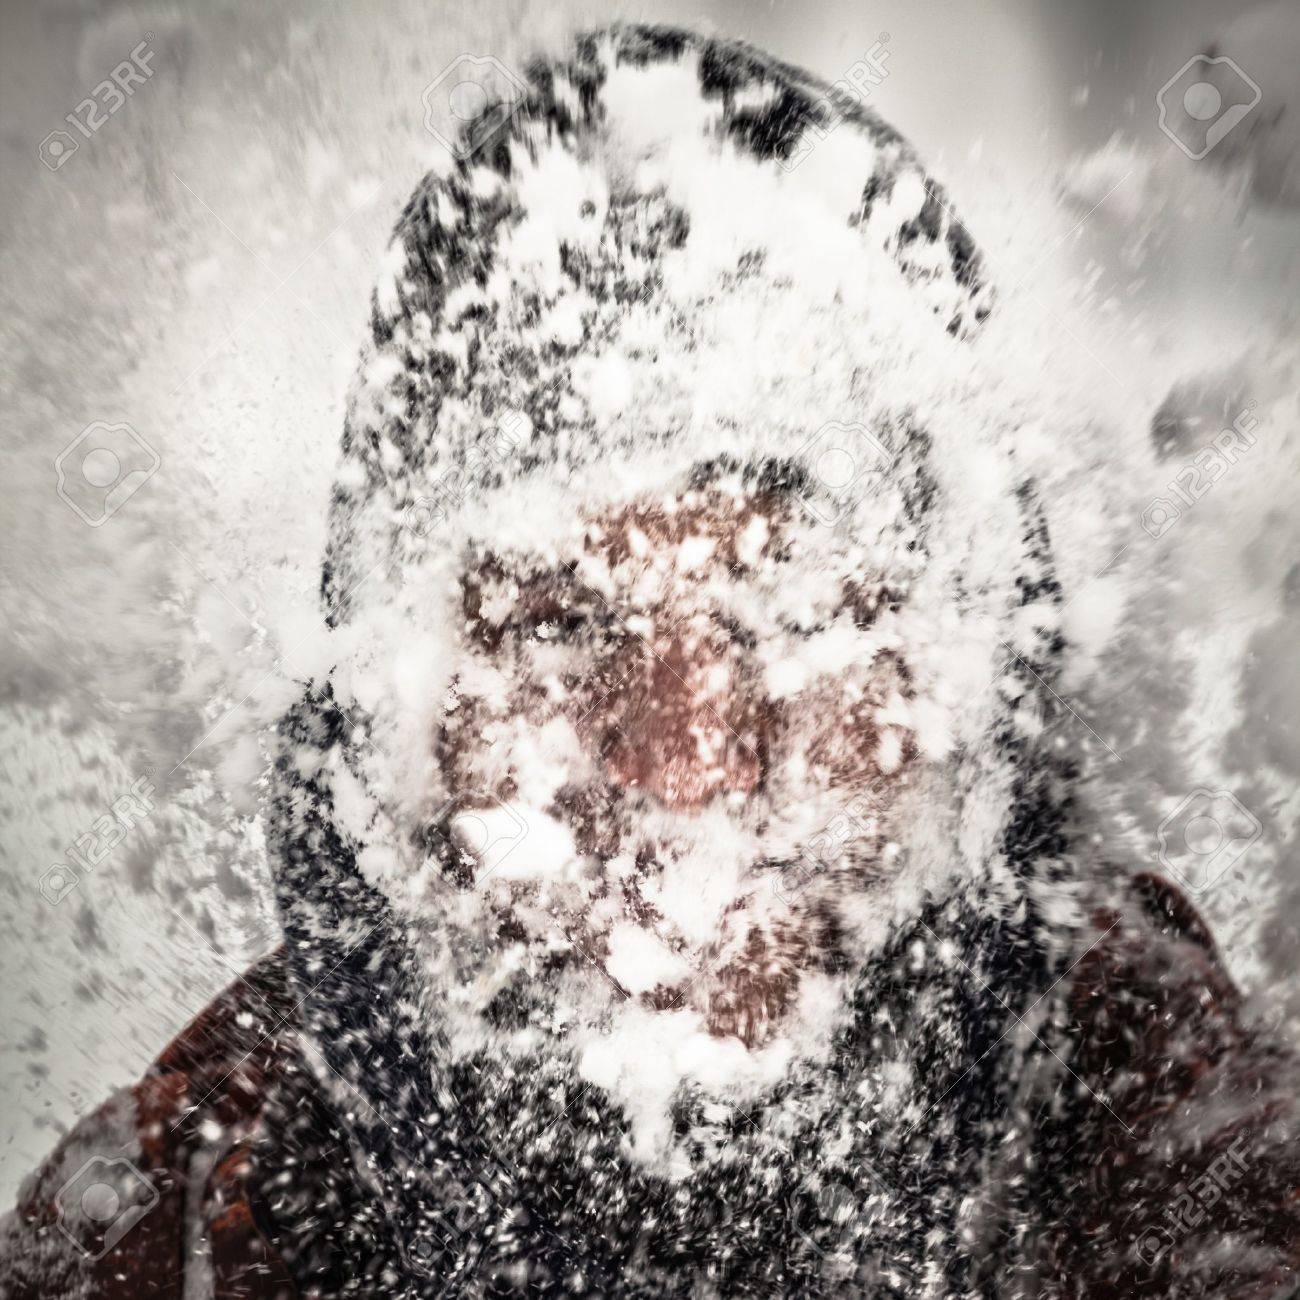 Silhouette of a man in heavy snow storm. - 17527521